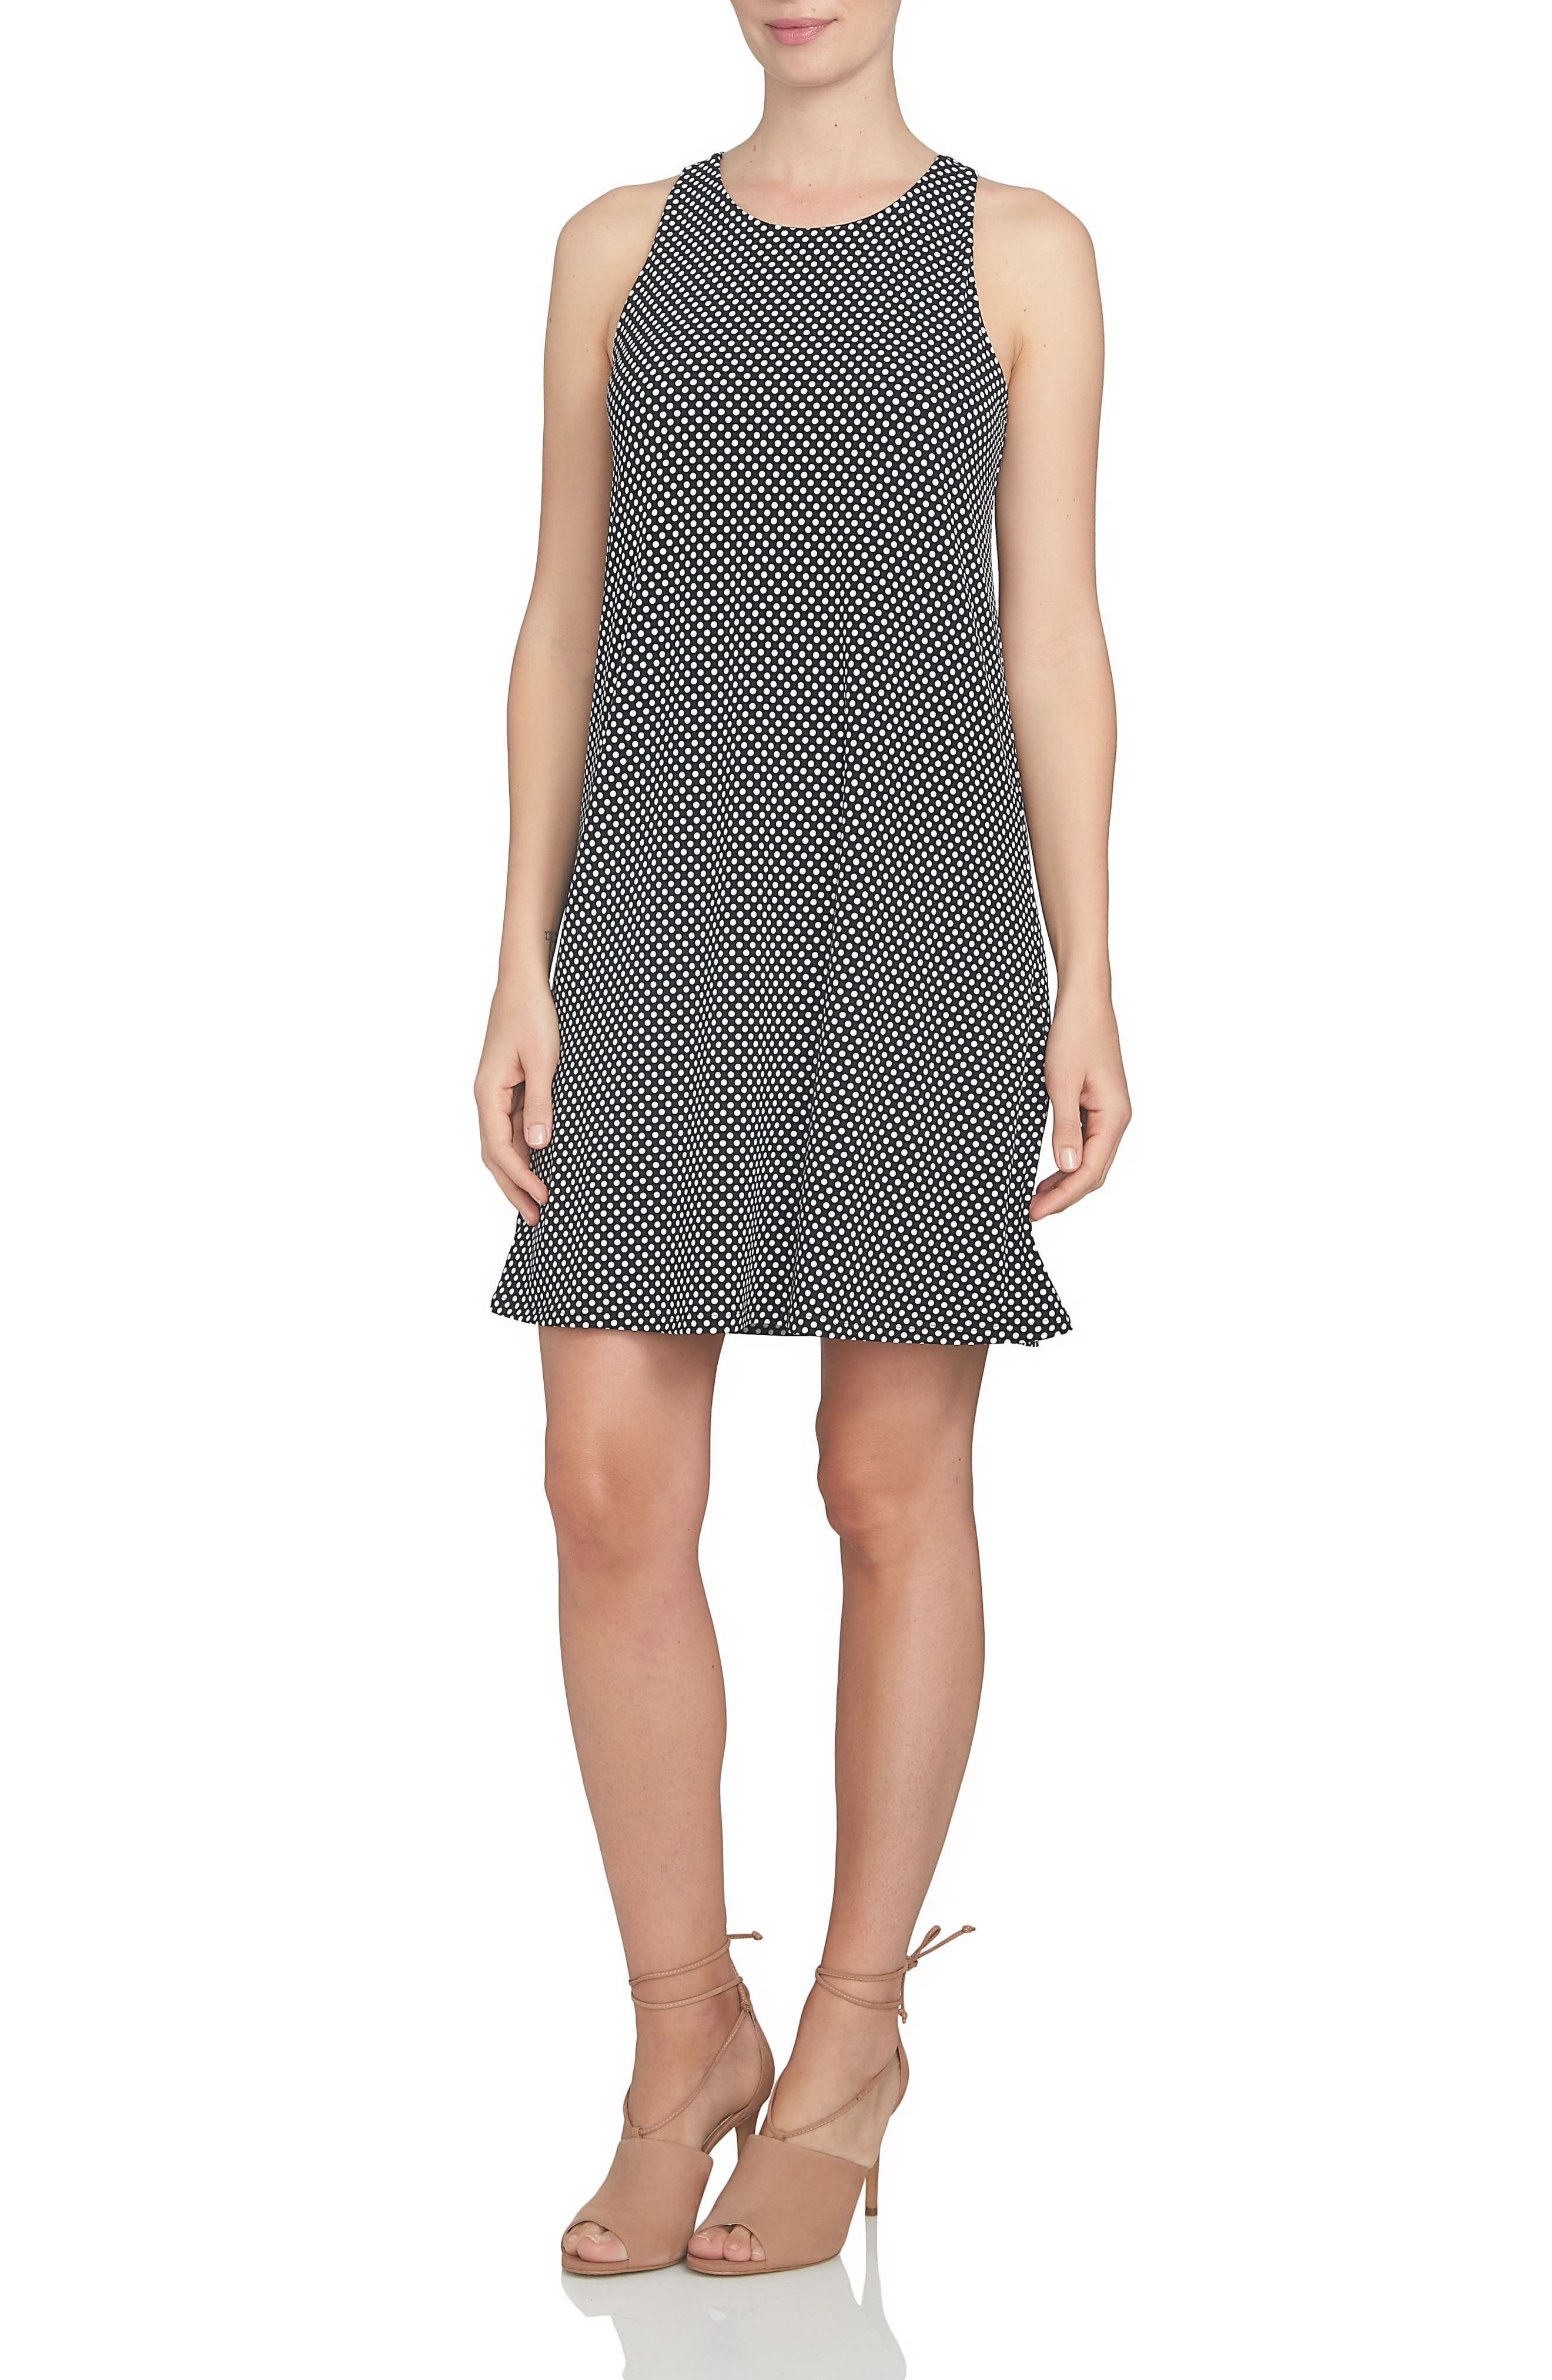 Polka Dot Twist Back Knit Shift Dress,                             Main thumbnail 1, color,                             001